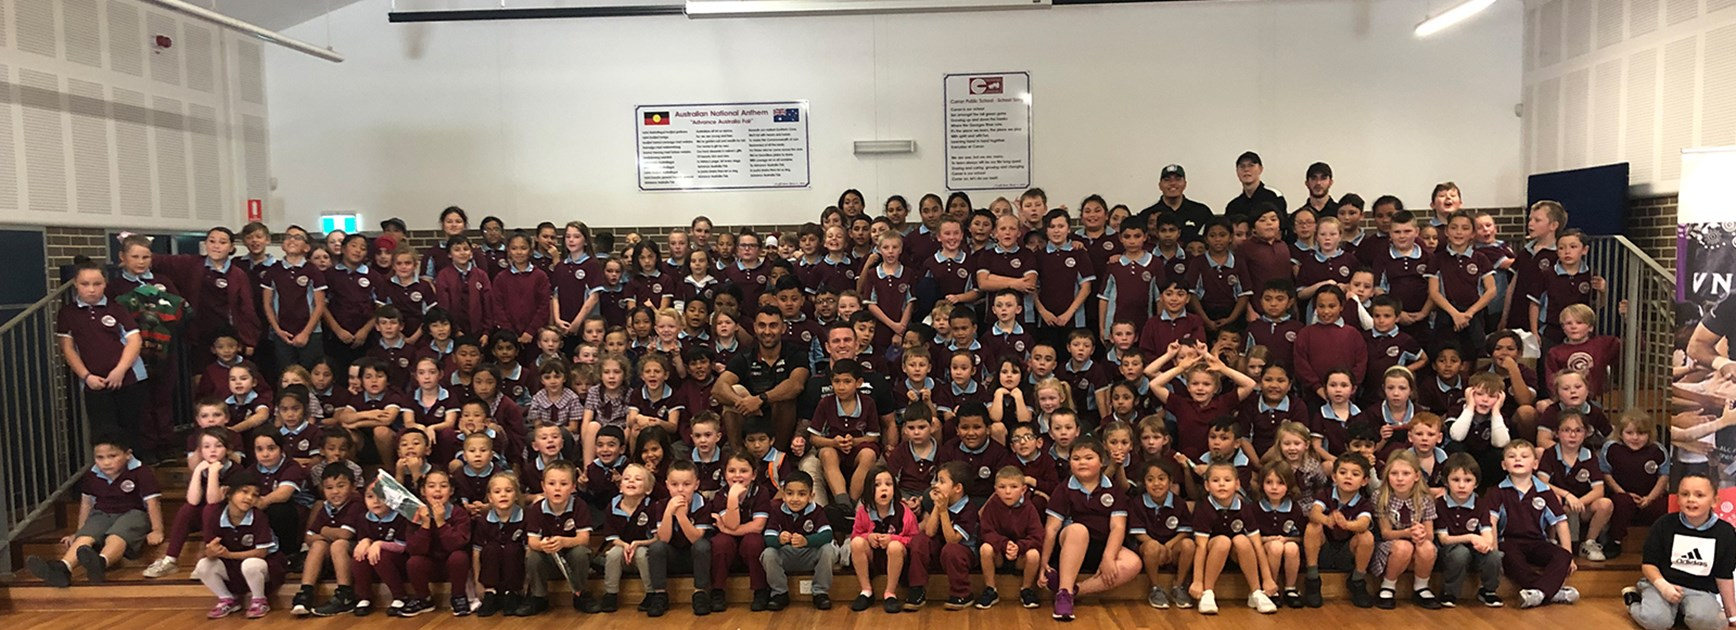 Souths Cares delivers successful Wellbeing Program at Curran Public School